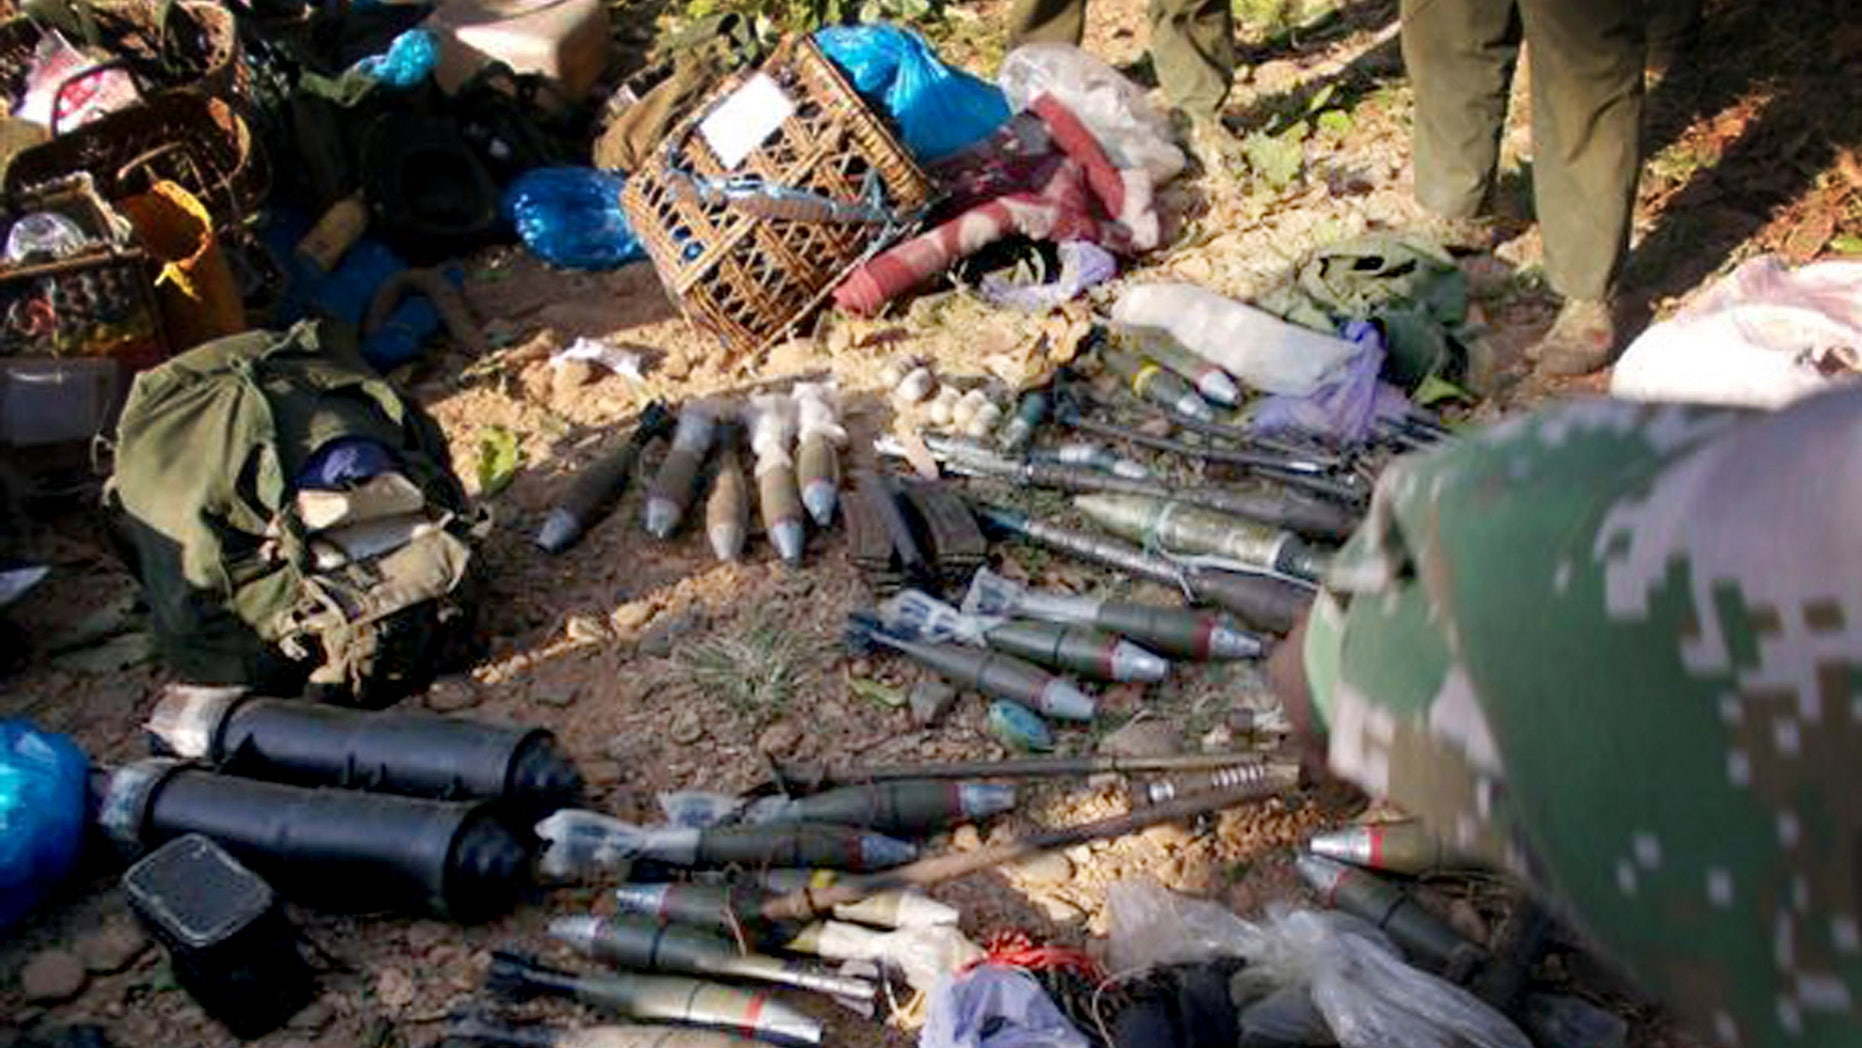 In this photo taken December 15, 2012, and released Monday, Jan. 7, 2013, by Free Burma Rangers, Kachin rebels display the ammunitions they seized from Myanmar soldiers in Laiza, northern Myanmar. Ethnic Kachin rebels in Myanmar accused government troops of launching two artillery attacks Sunday against the city that serves as their headquarters, but no casualties or significant damage were reported. (AP Photo/Free Burma Rangers)